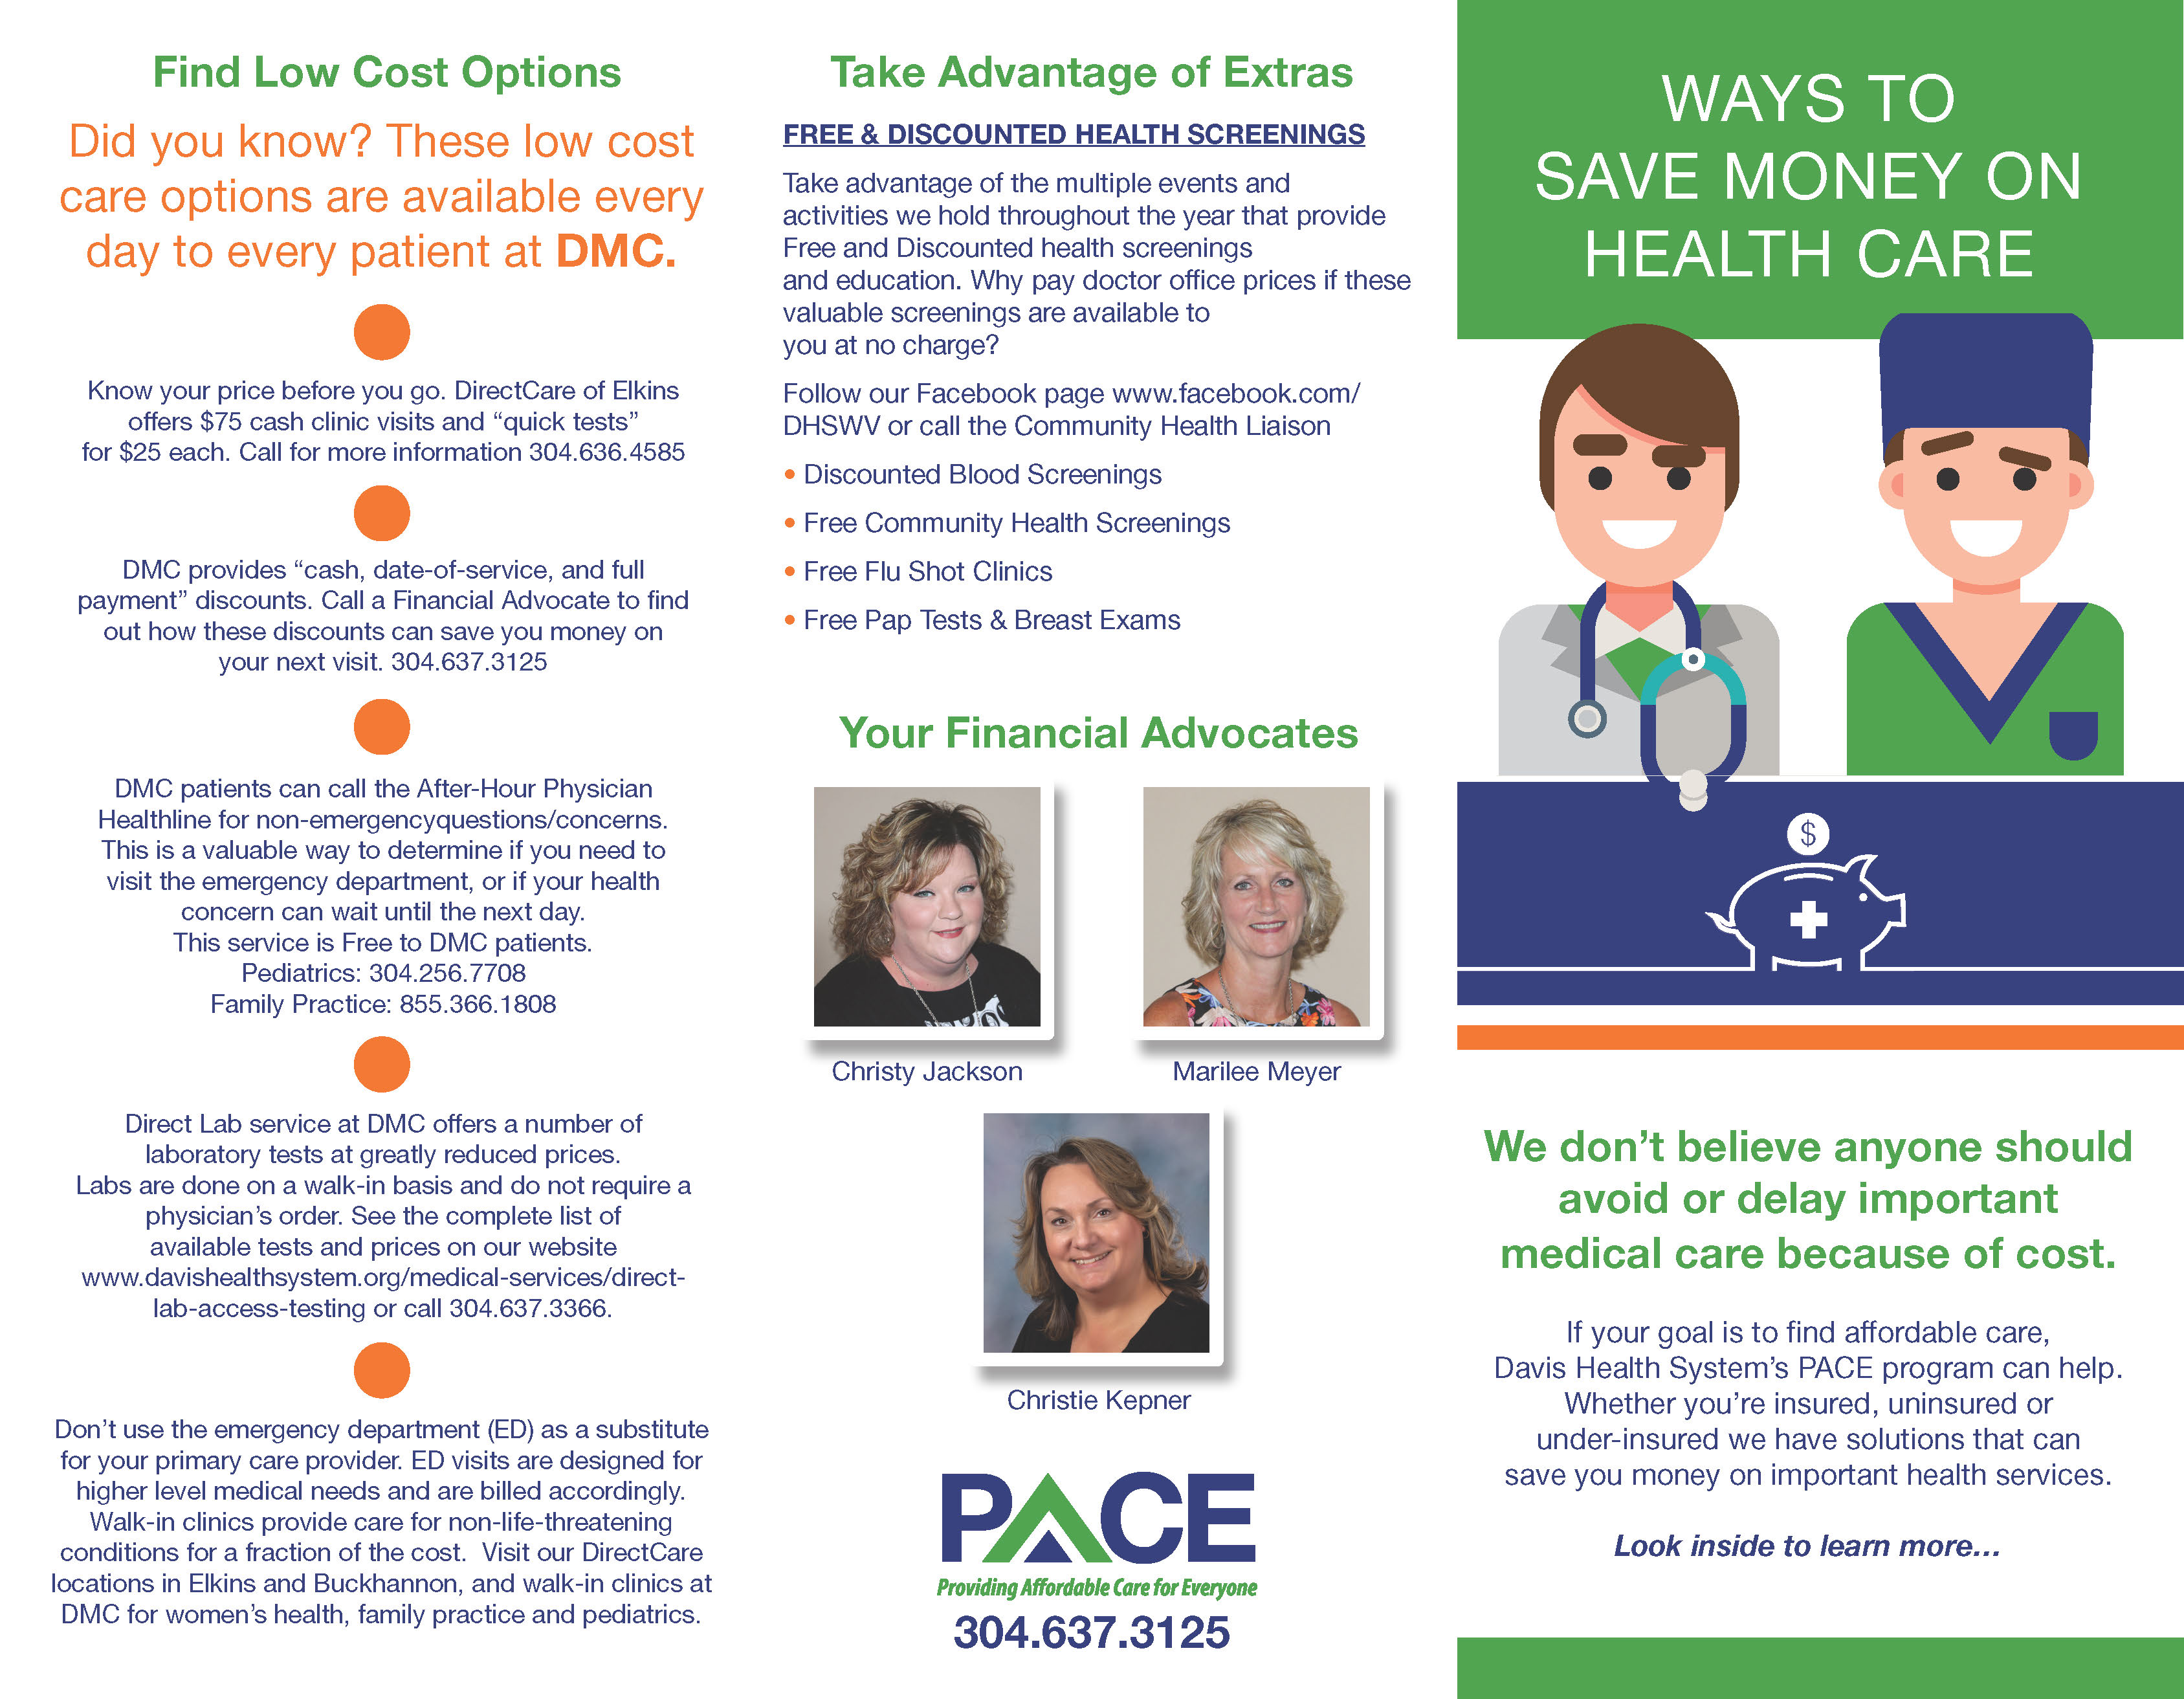 Providing Affordable Care for Everyone (PACE) | Davis Health System